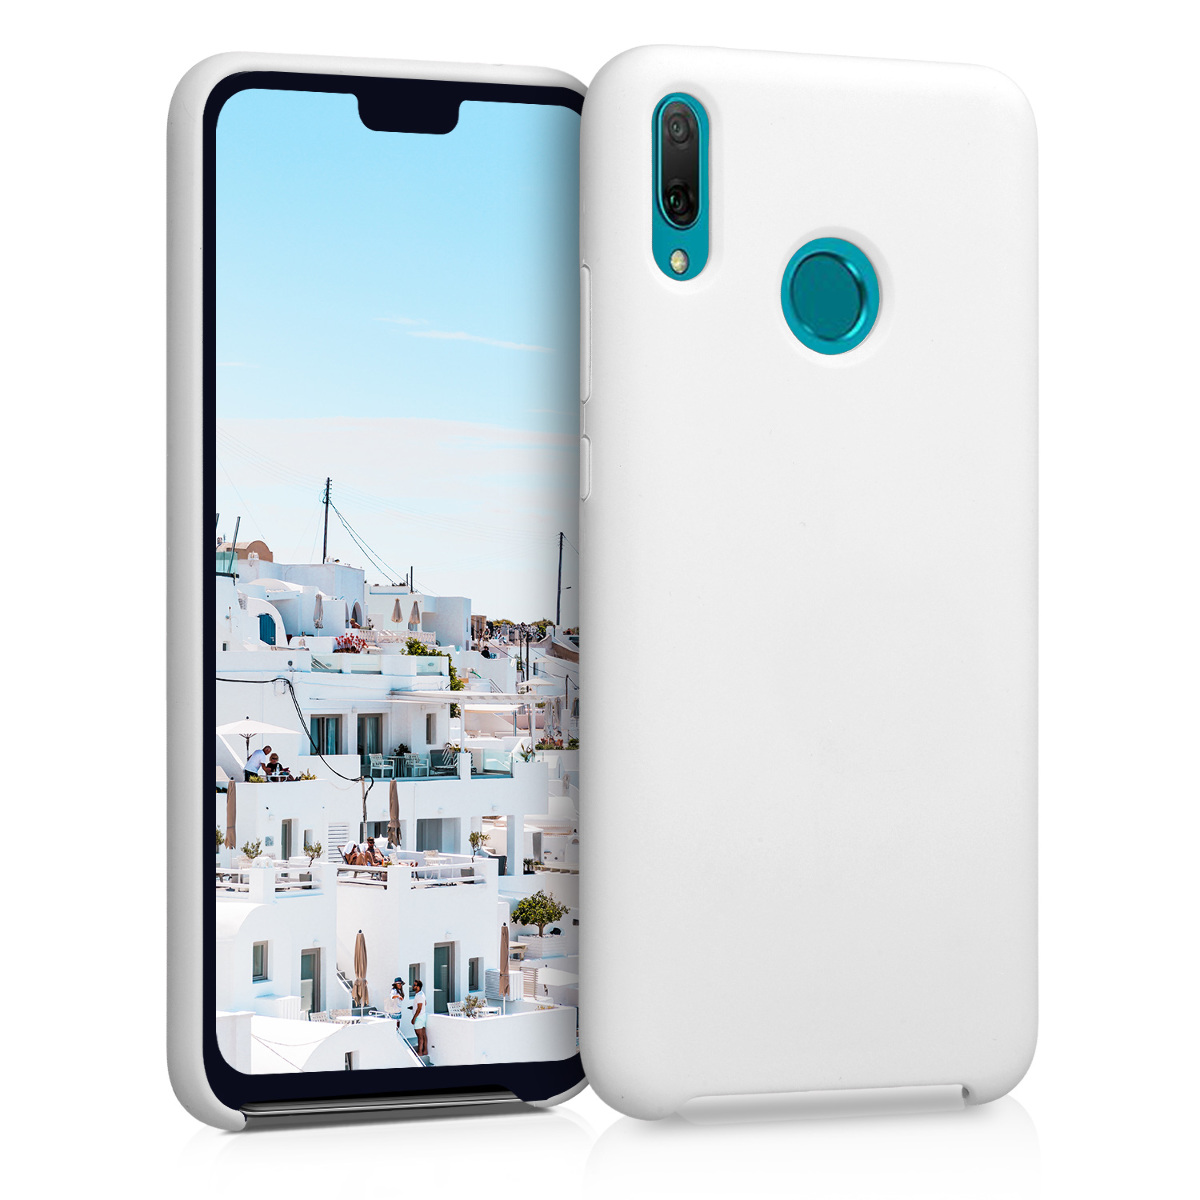 KW Θήκη Σιλικόνης Huawei Y9 2019 - Soft Flexible Rubber - White (49514.02)